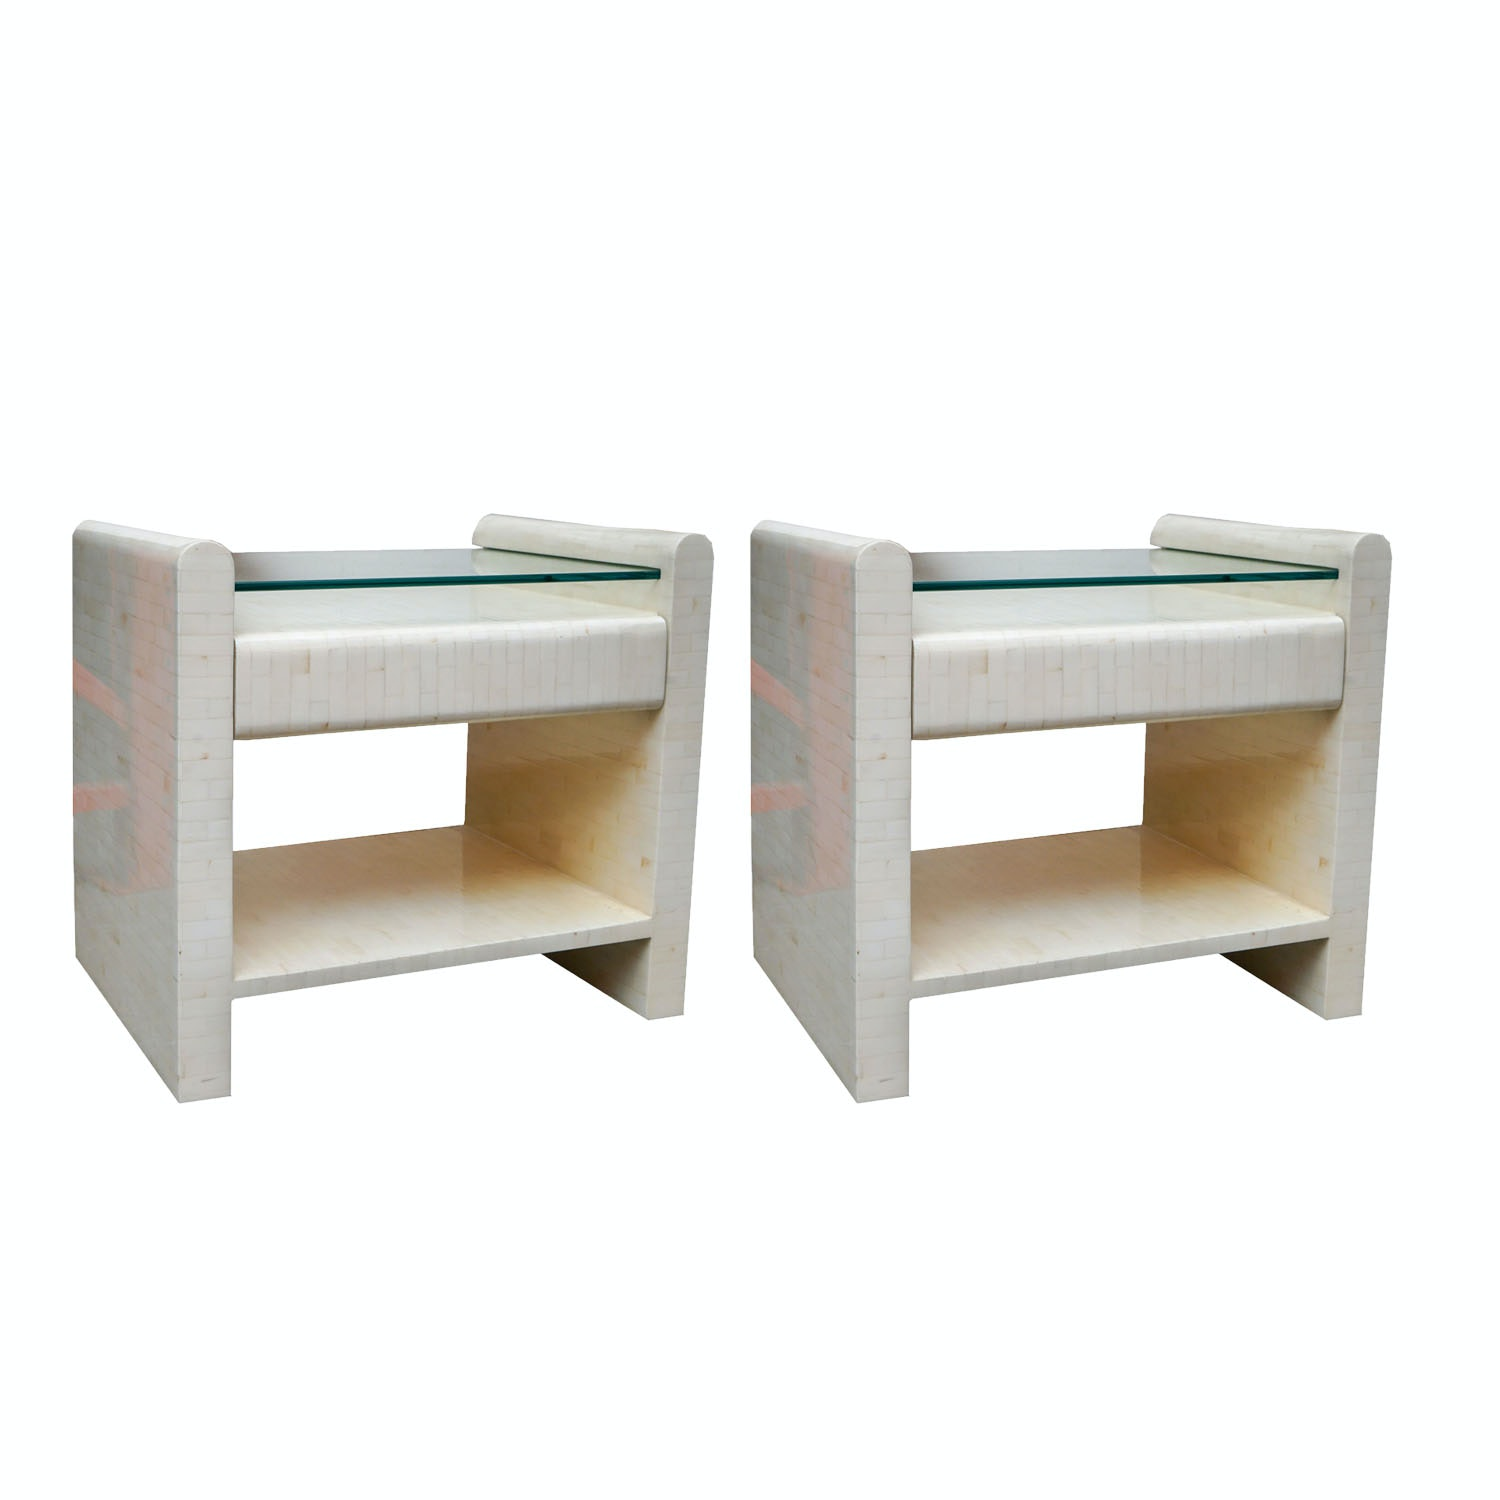 Tessellated Bone Tile Nightstands by Enrique Garcel